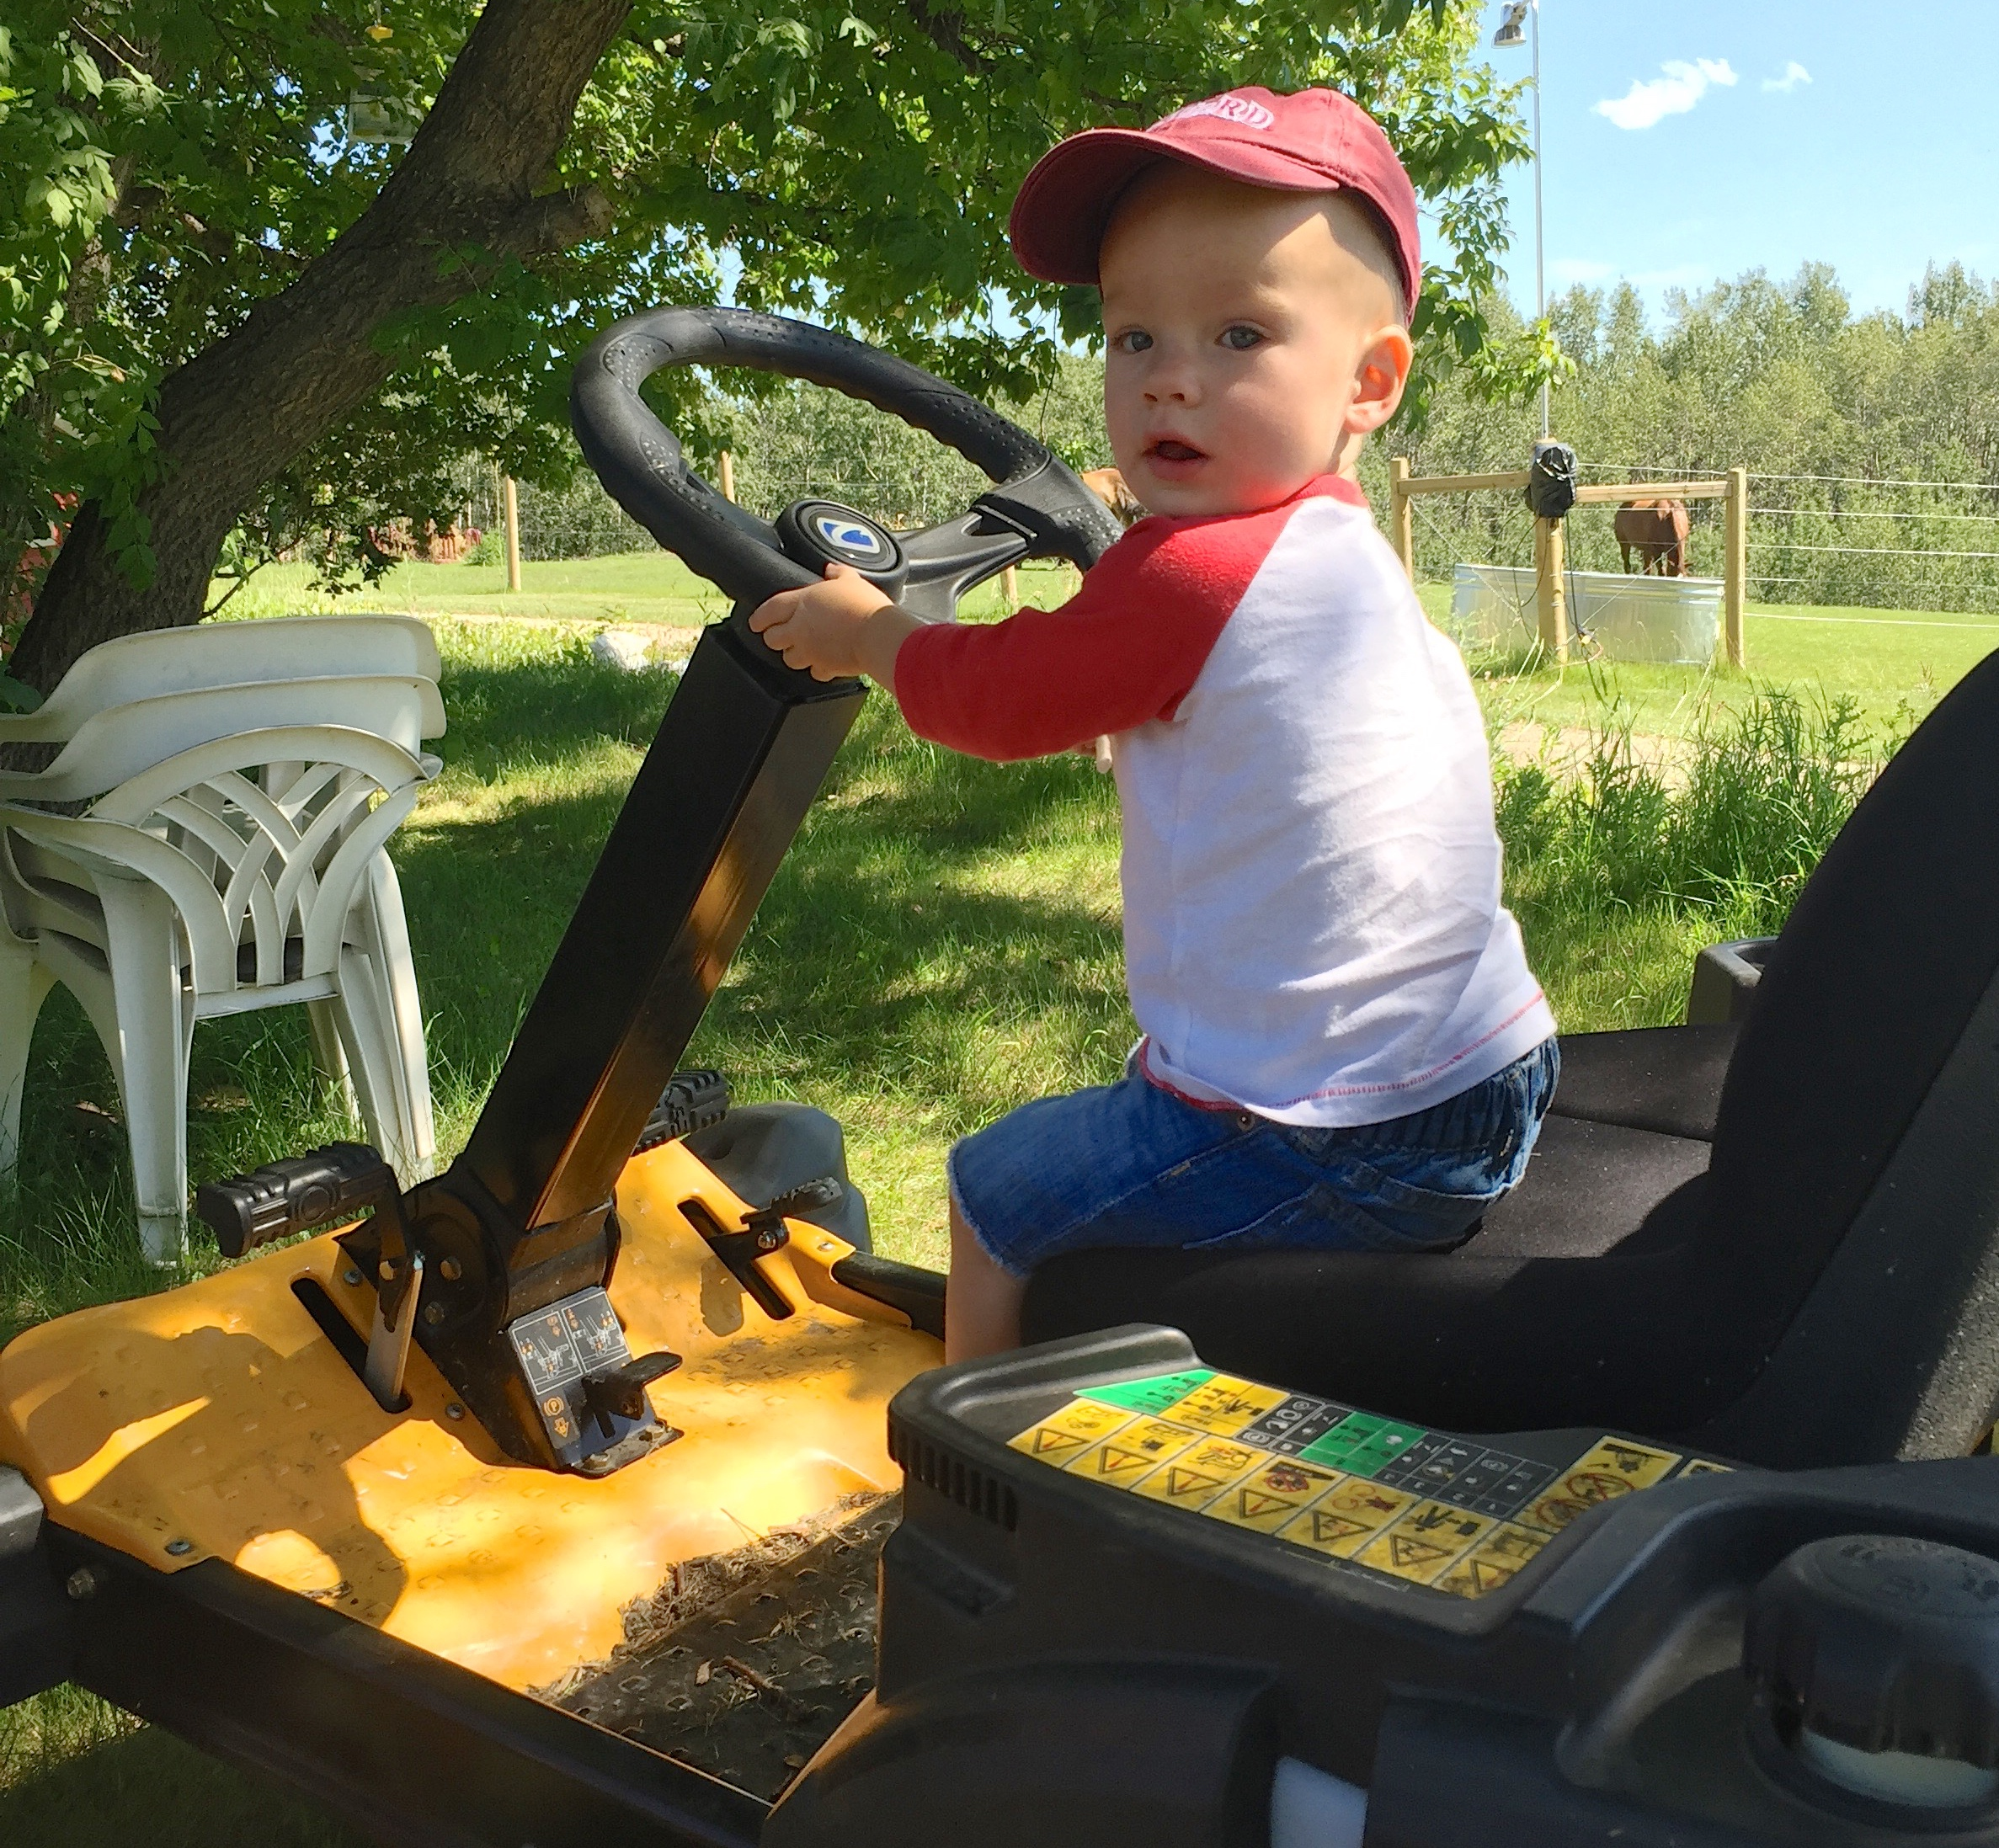 41 William on Tractor in Blackfalds July 2016